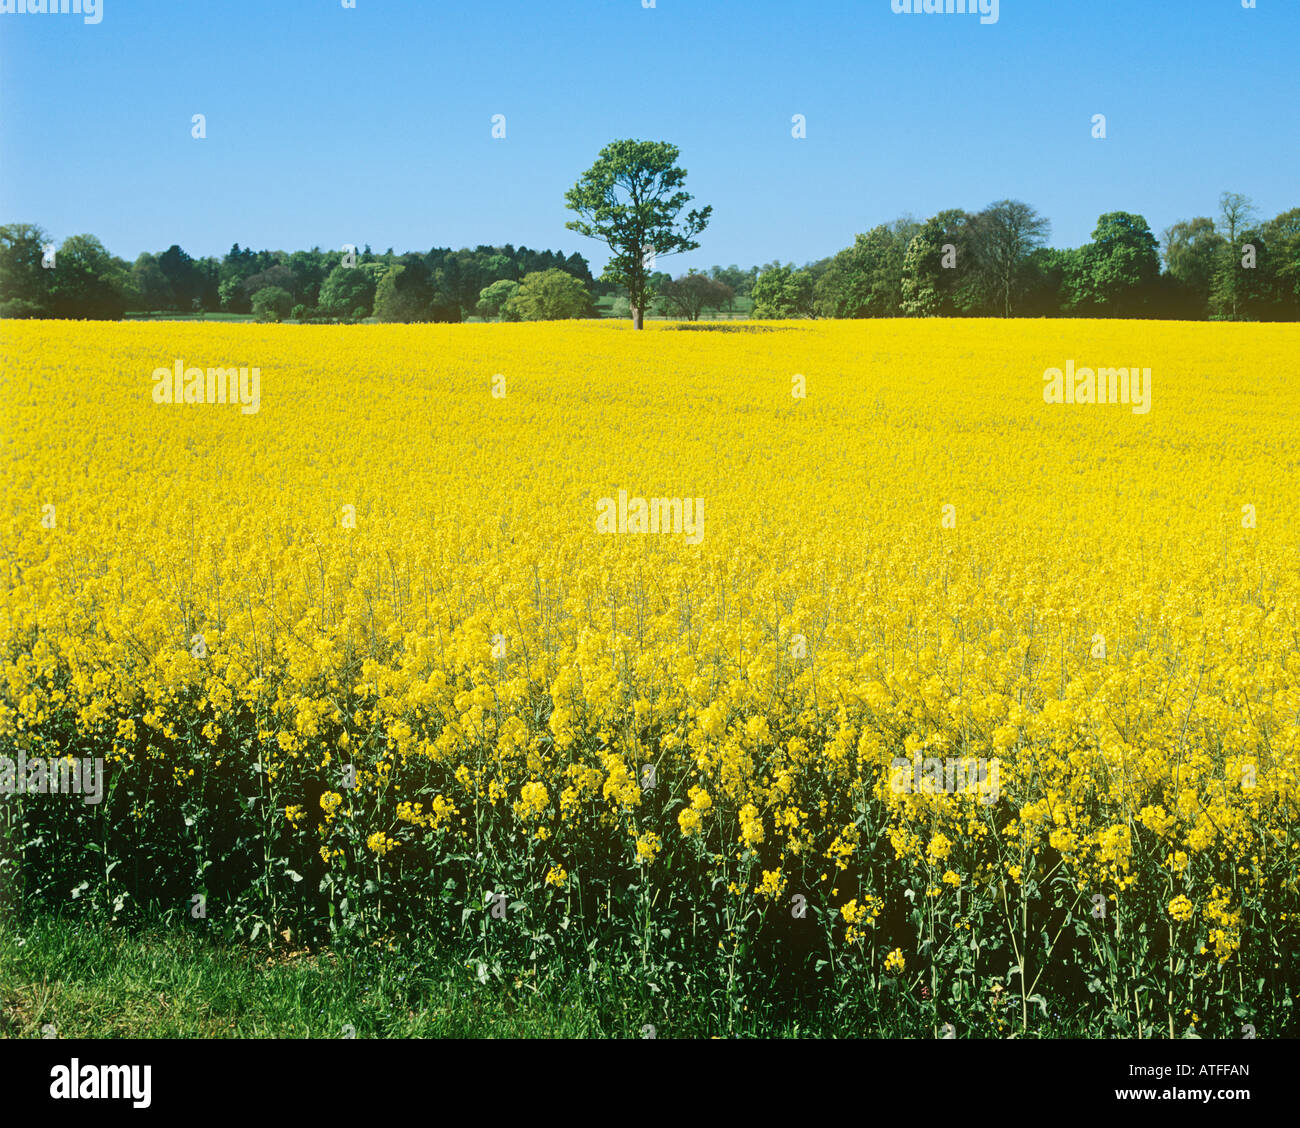 Field of flowers - Stock Image